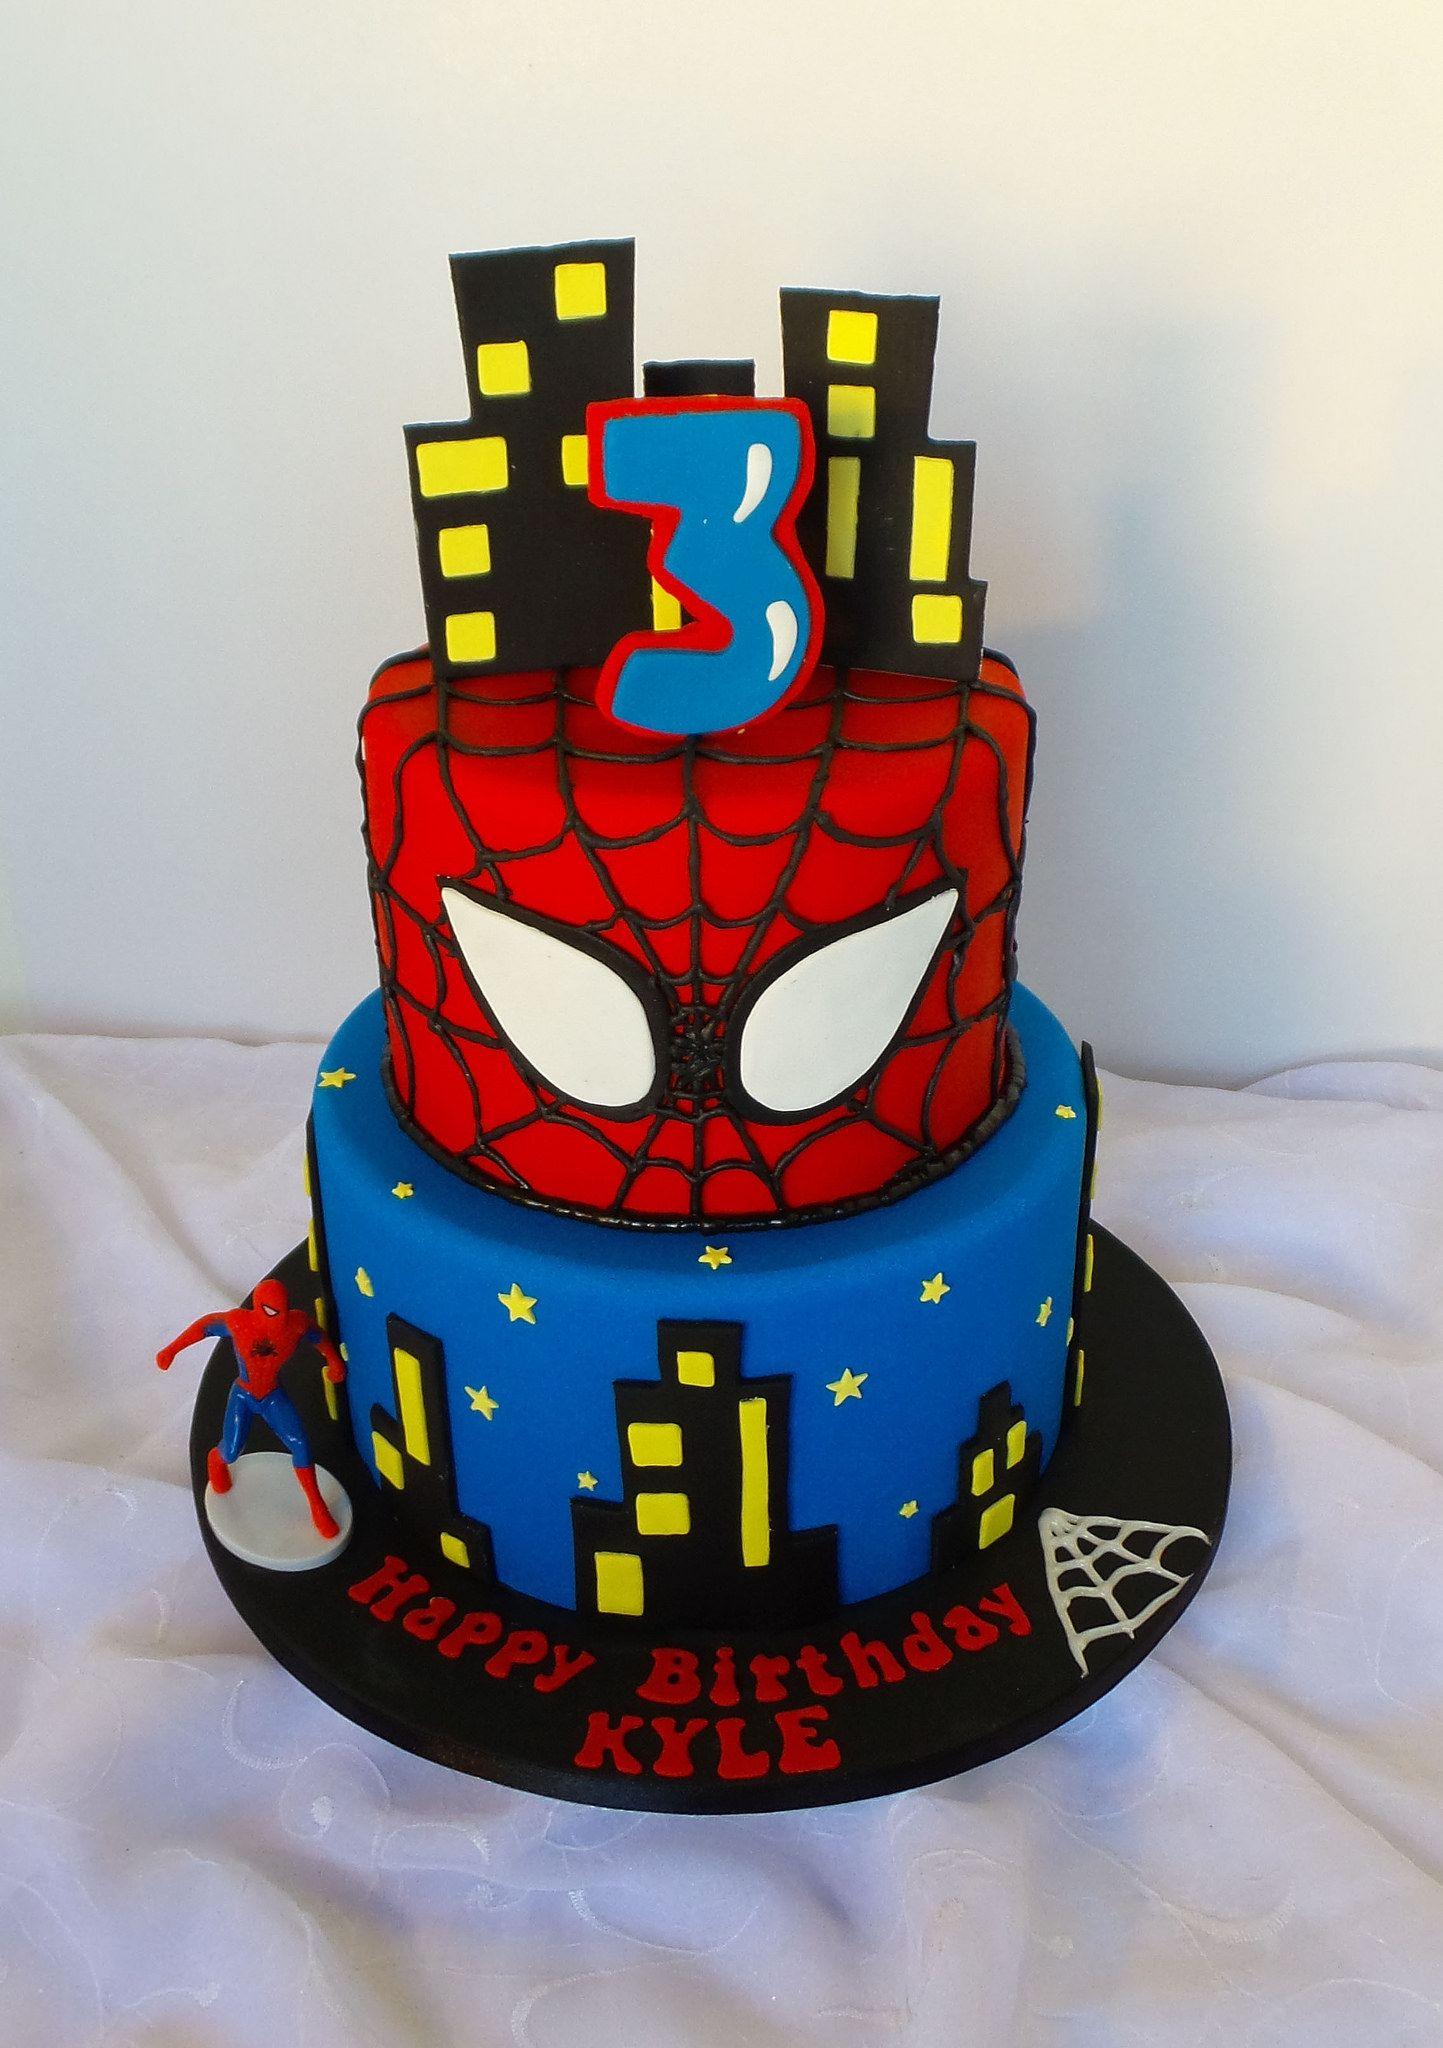 Excellent Spider Man Cakes Birthday Cakes Anniversary Cakes Wedding Cakes Funny Birthday Cards Online Barepcheapnameinfo